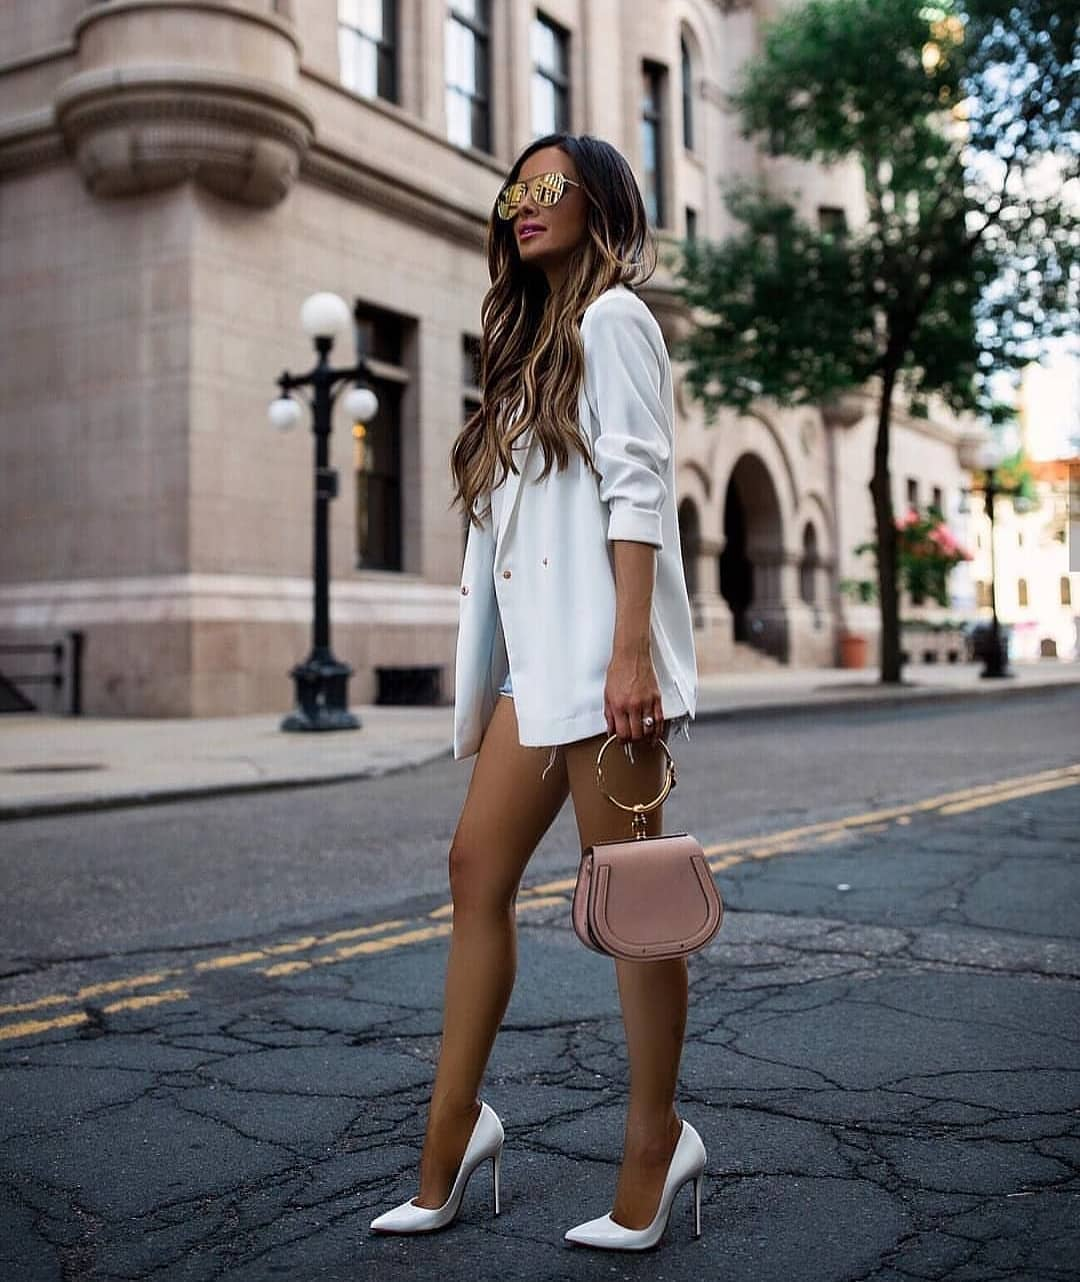 Long Blazer In White And White Heels For Summer 2019